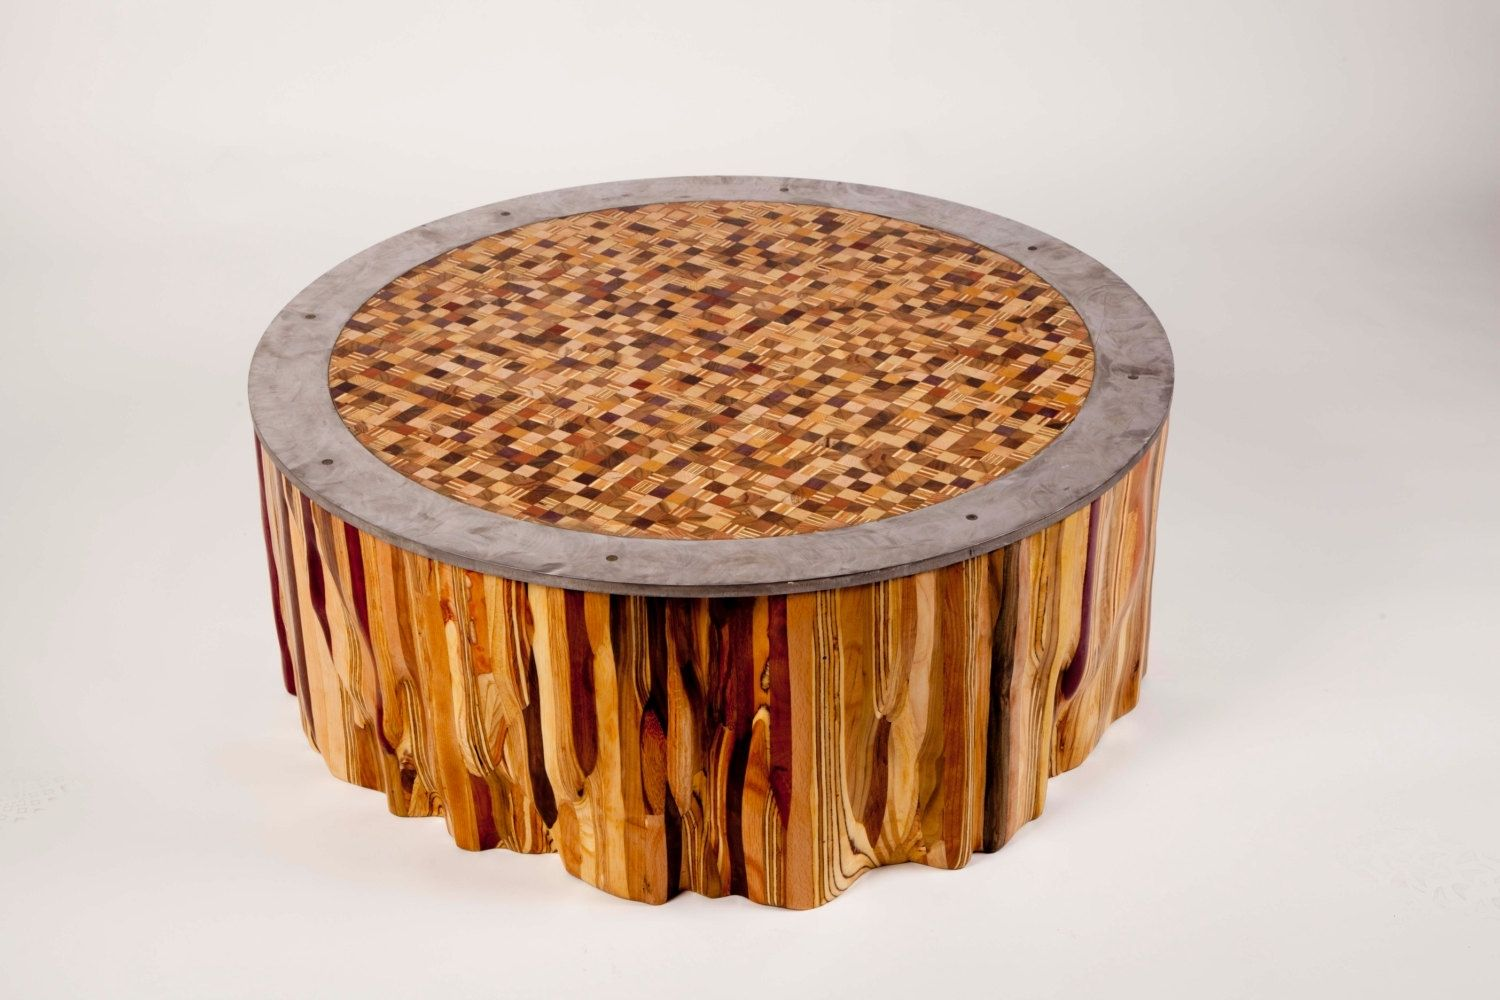 hand made mixed wood mosaic end grain top coffee table fast accent custom red lamp peva tablecloth battery operated lamps ikea narrow knotty pine chairs nate berkus bedding